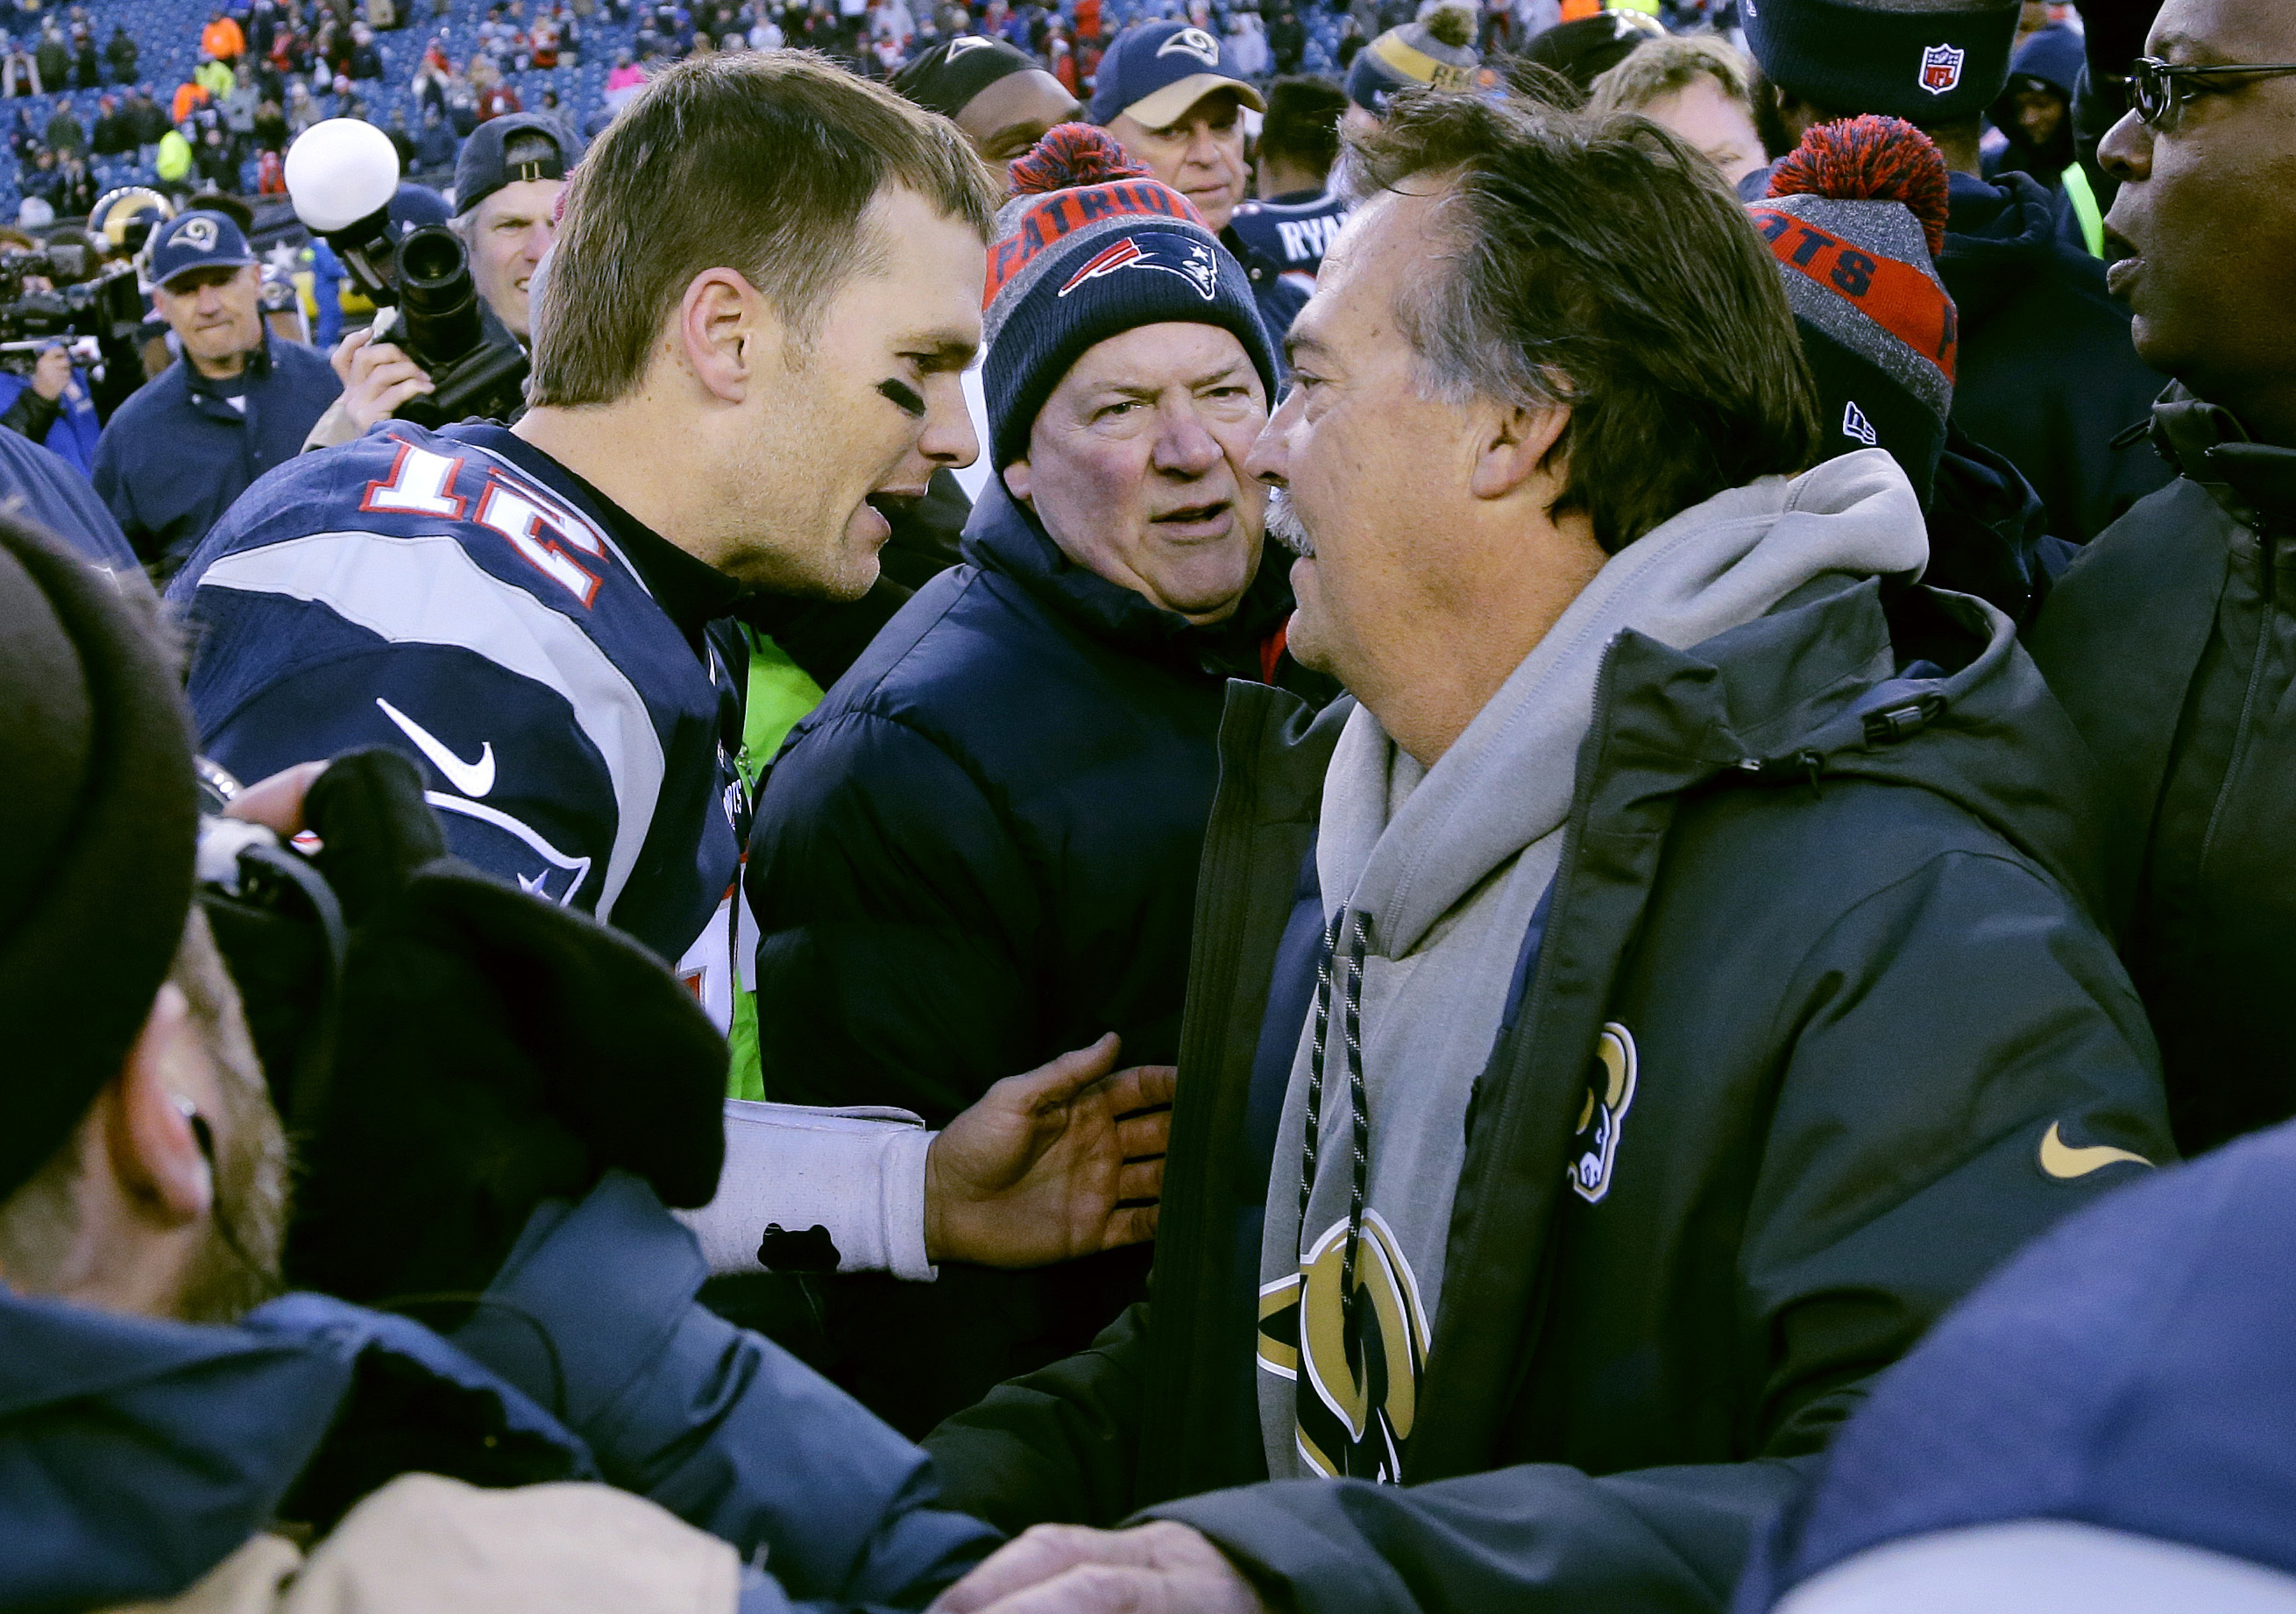 New England Patriots quarterback Tom Brady, left, and Los Angeles Rams head coach Jeff Fisher speak at midfield after after an NFL football game, Sunday, Dec. 4, 2016, in Foxborough, Mass. The Patriots won 26-10. (AP Photo/Elise Amendola)